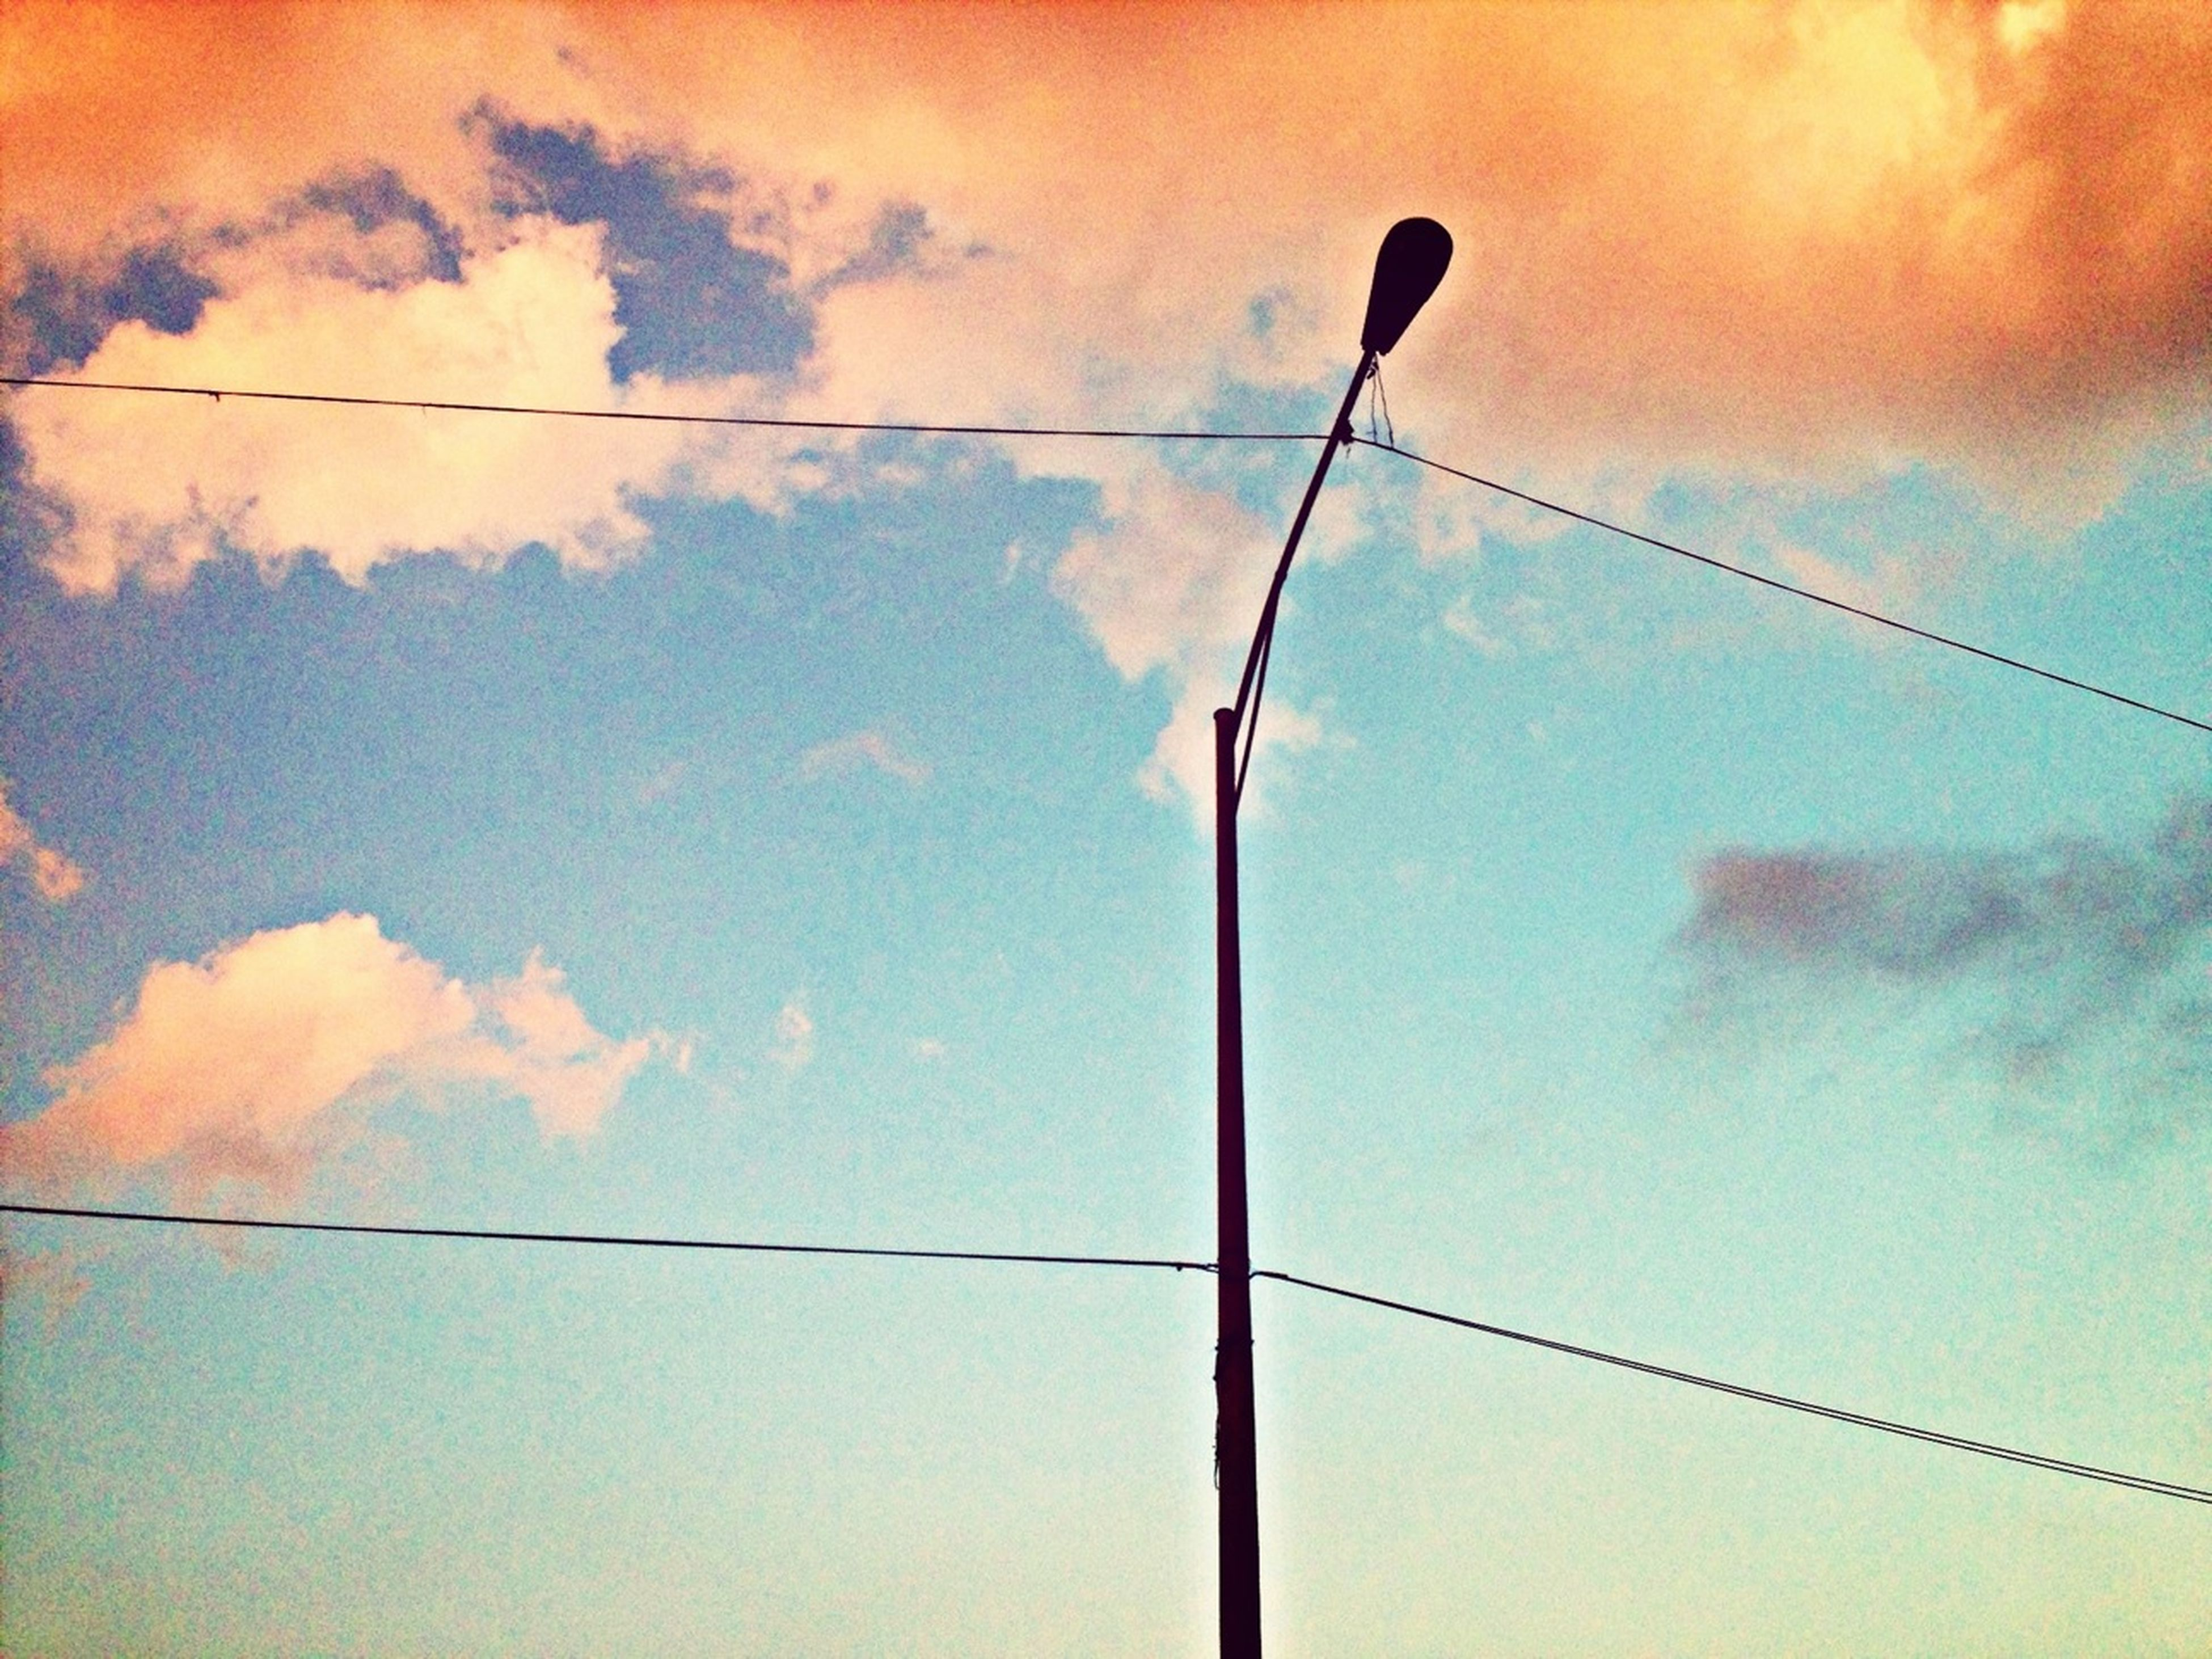 low angle view, power line, electricity, cable, power supply, sky, street light, lighting equipment, fuel and power generation, electricity pylon, technology, connection, pole, sunset, power cable, cloud - sky, silhouette, cloud, no people, outdoors